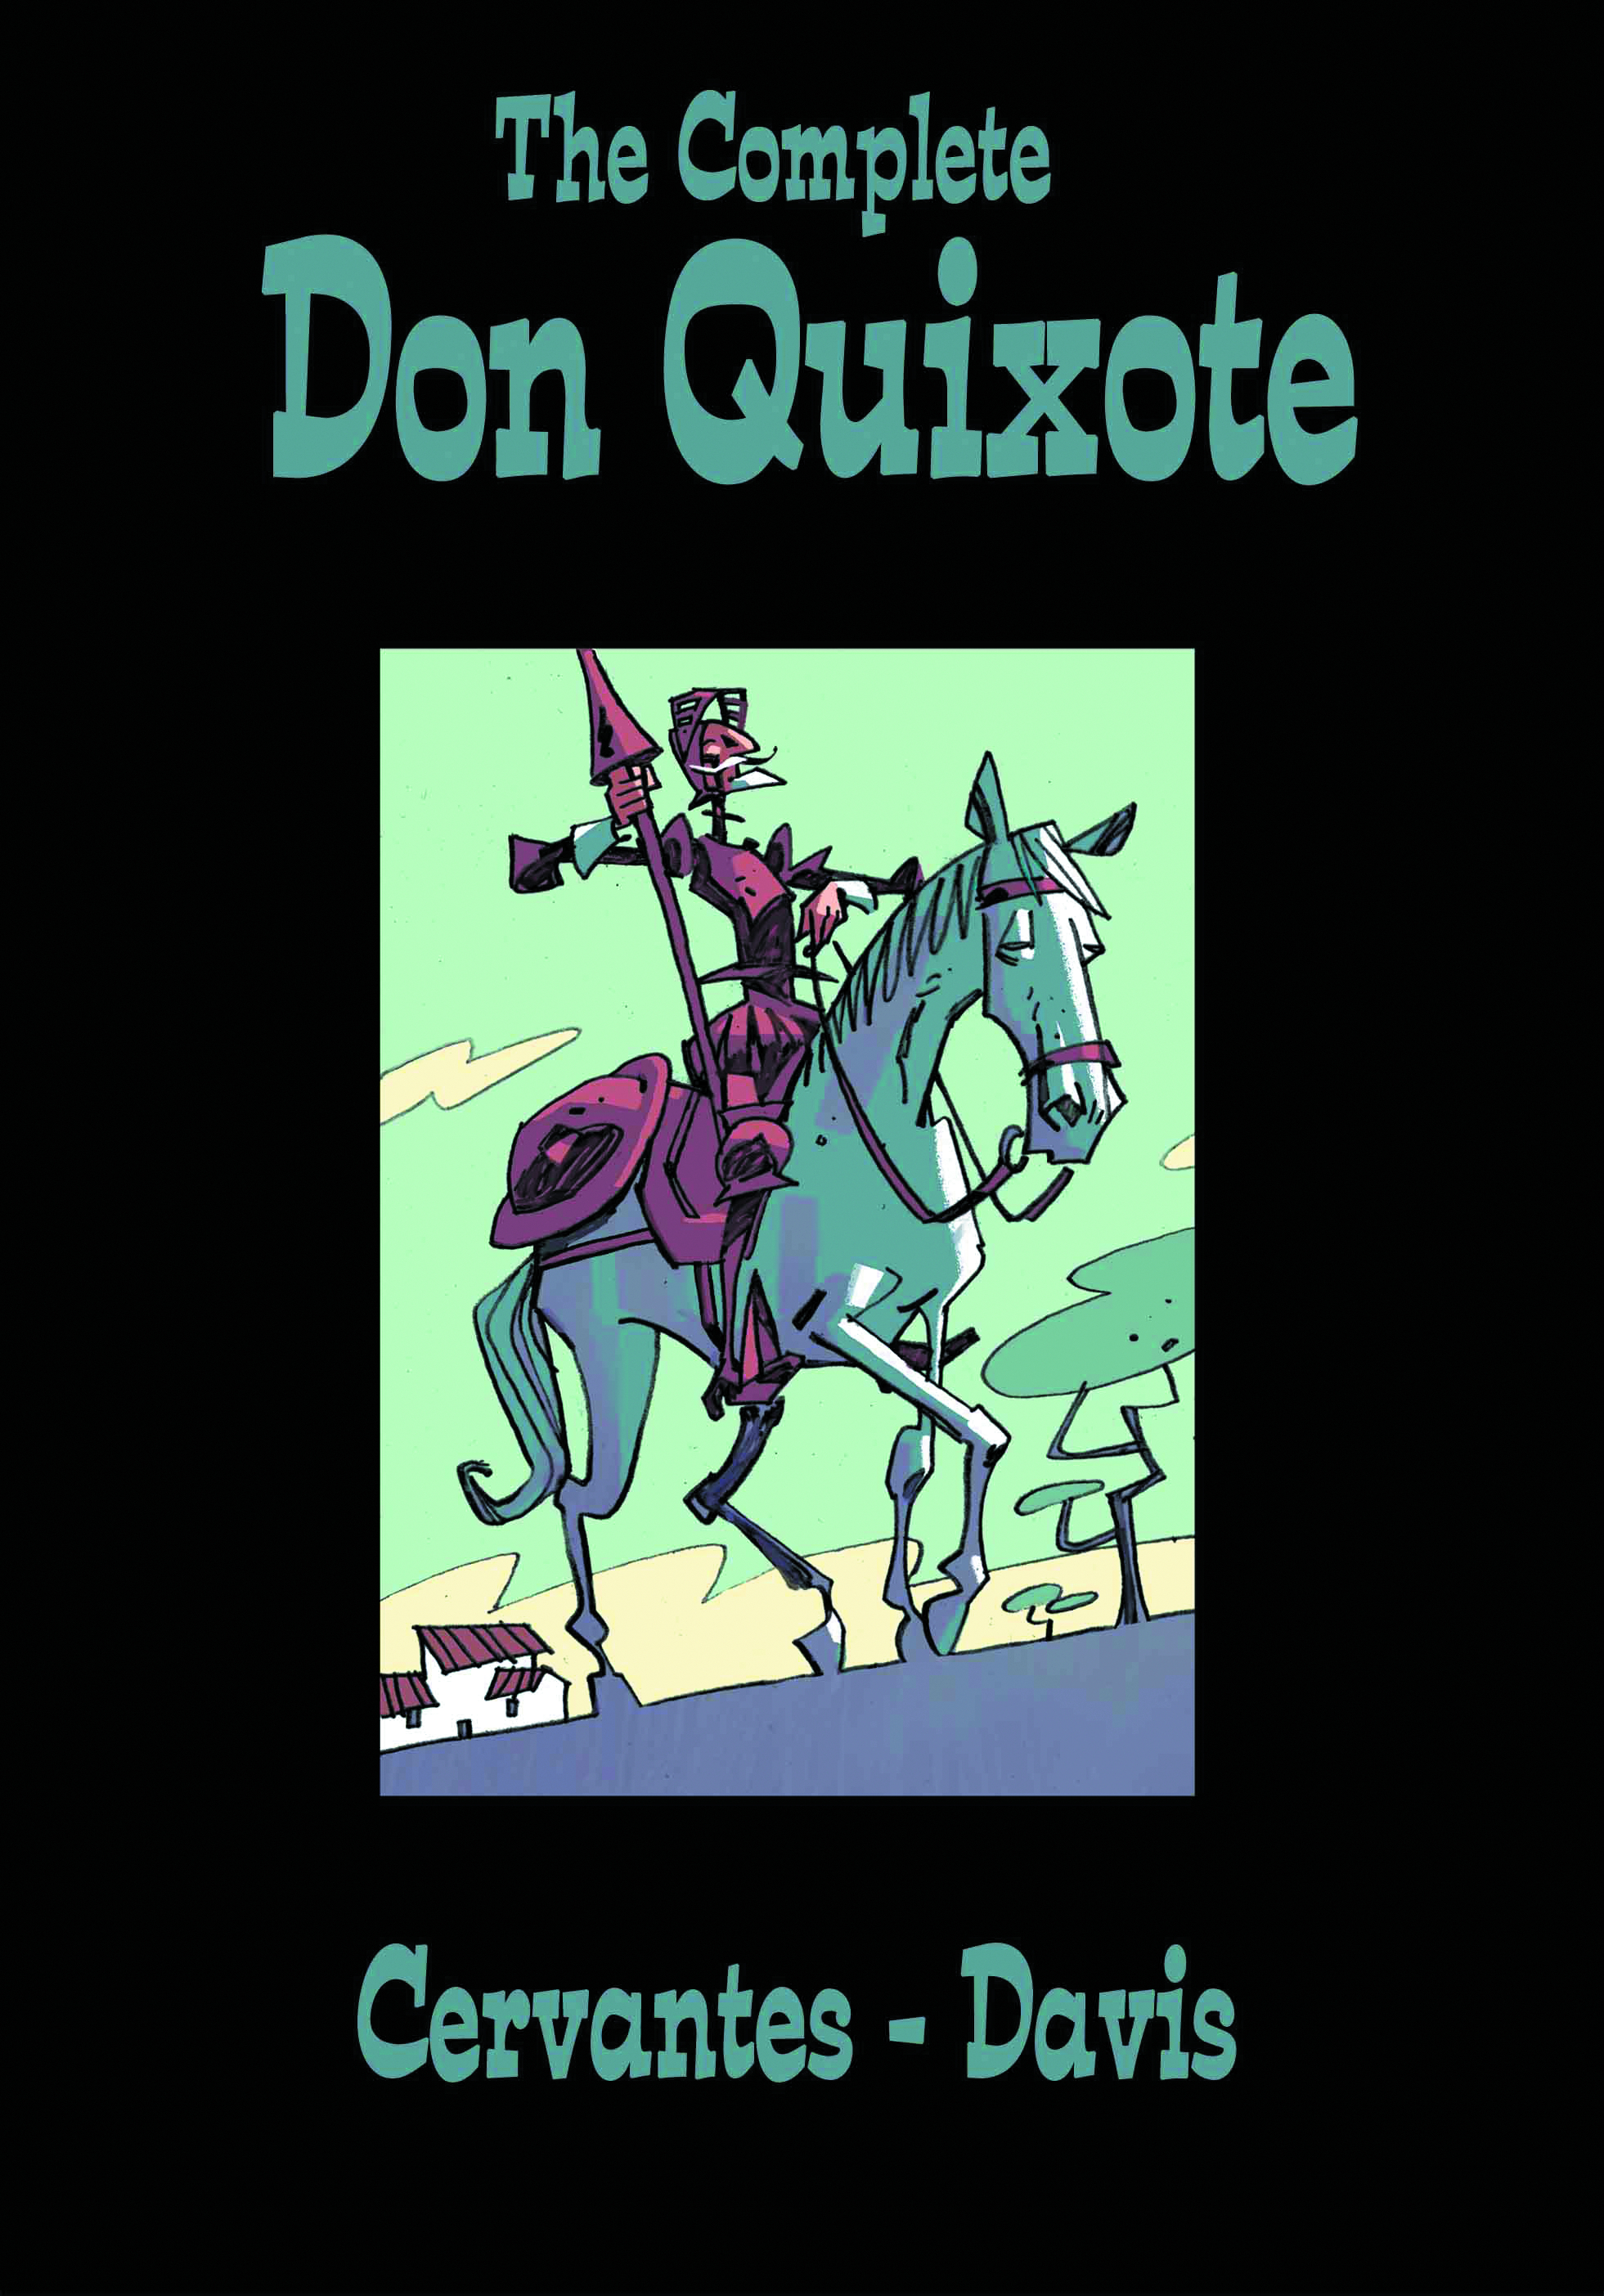 DON QUIXOTE COMP GN